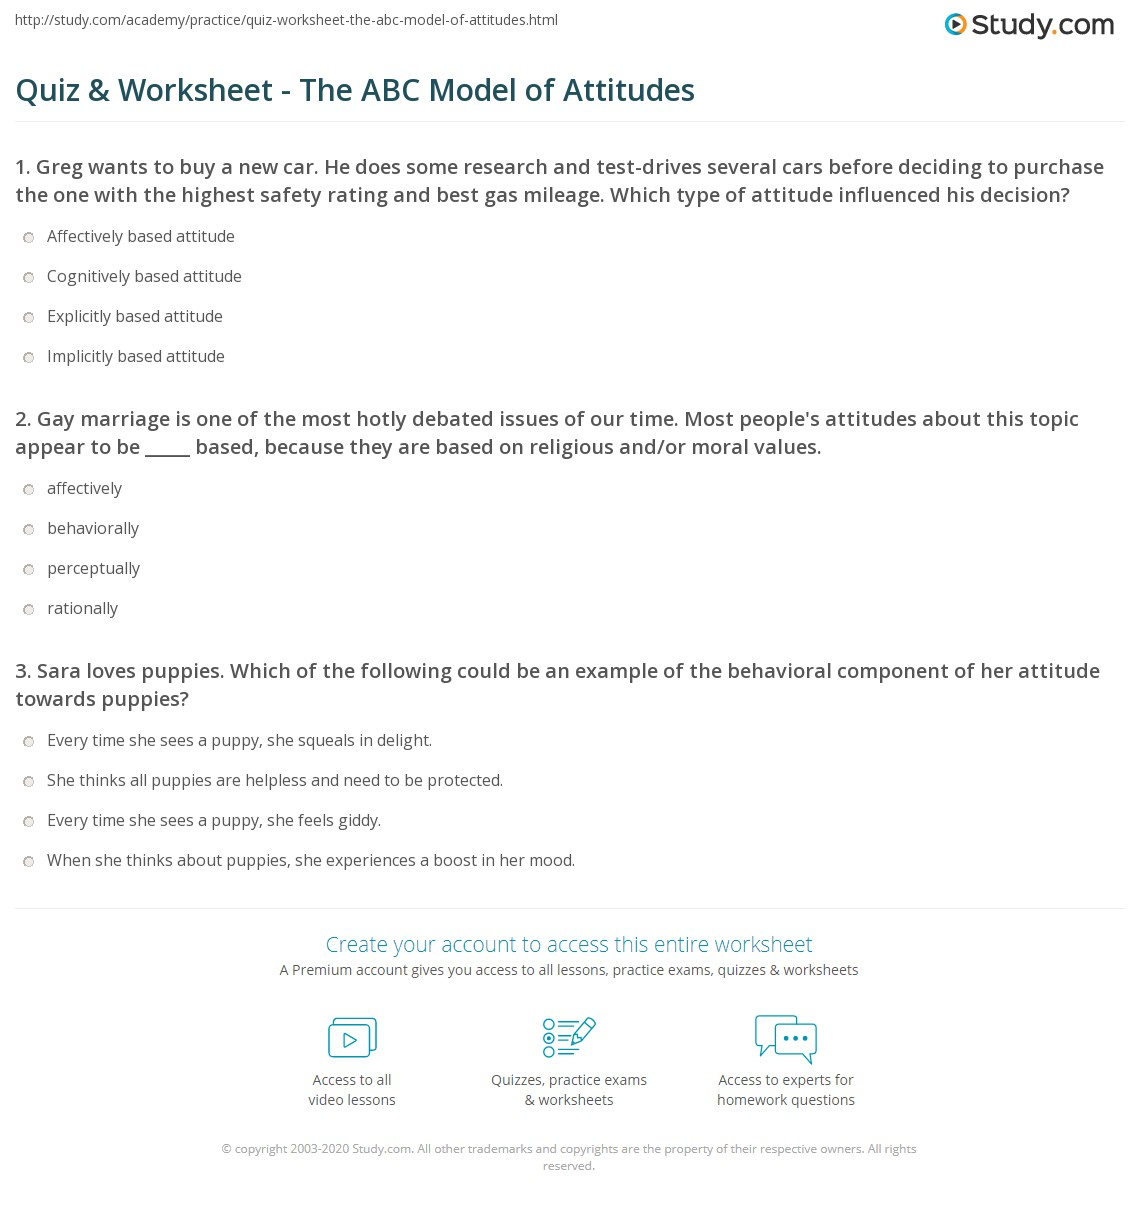 worksheet Behavior Of Gases Worksheet quiz worksheet the abc model of attitudes study com 1 gay marriage is one most hotly debated issues our time peoples about this topic appear to be based becau